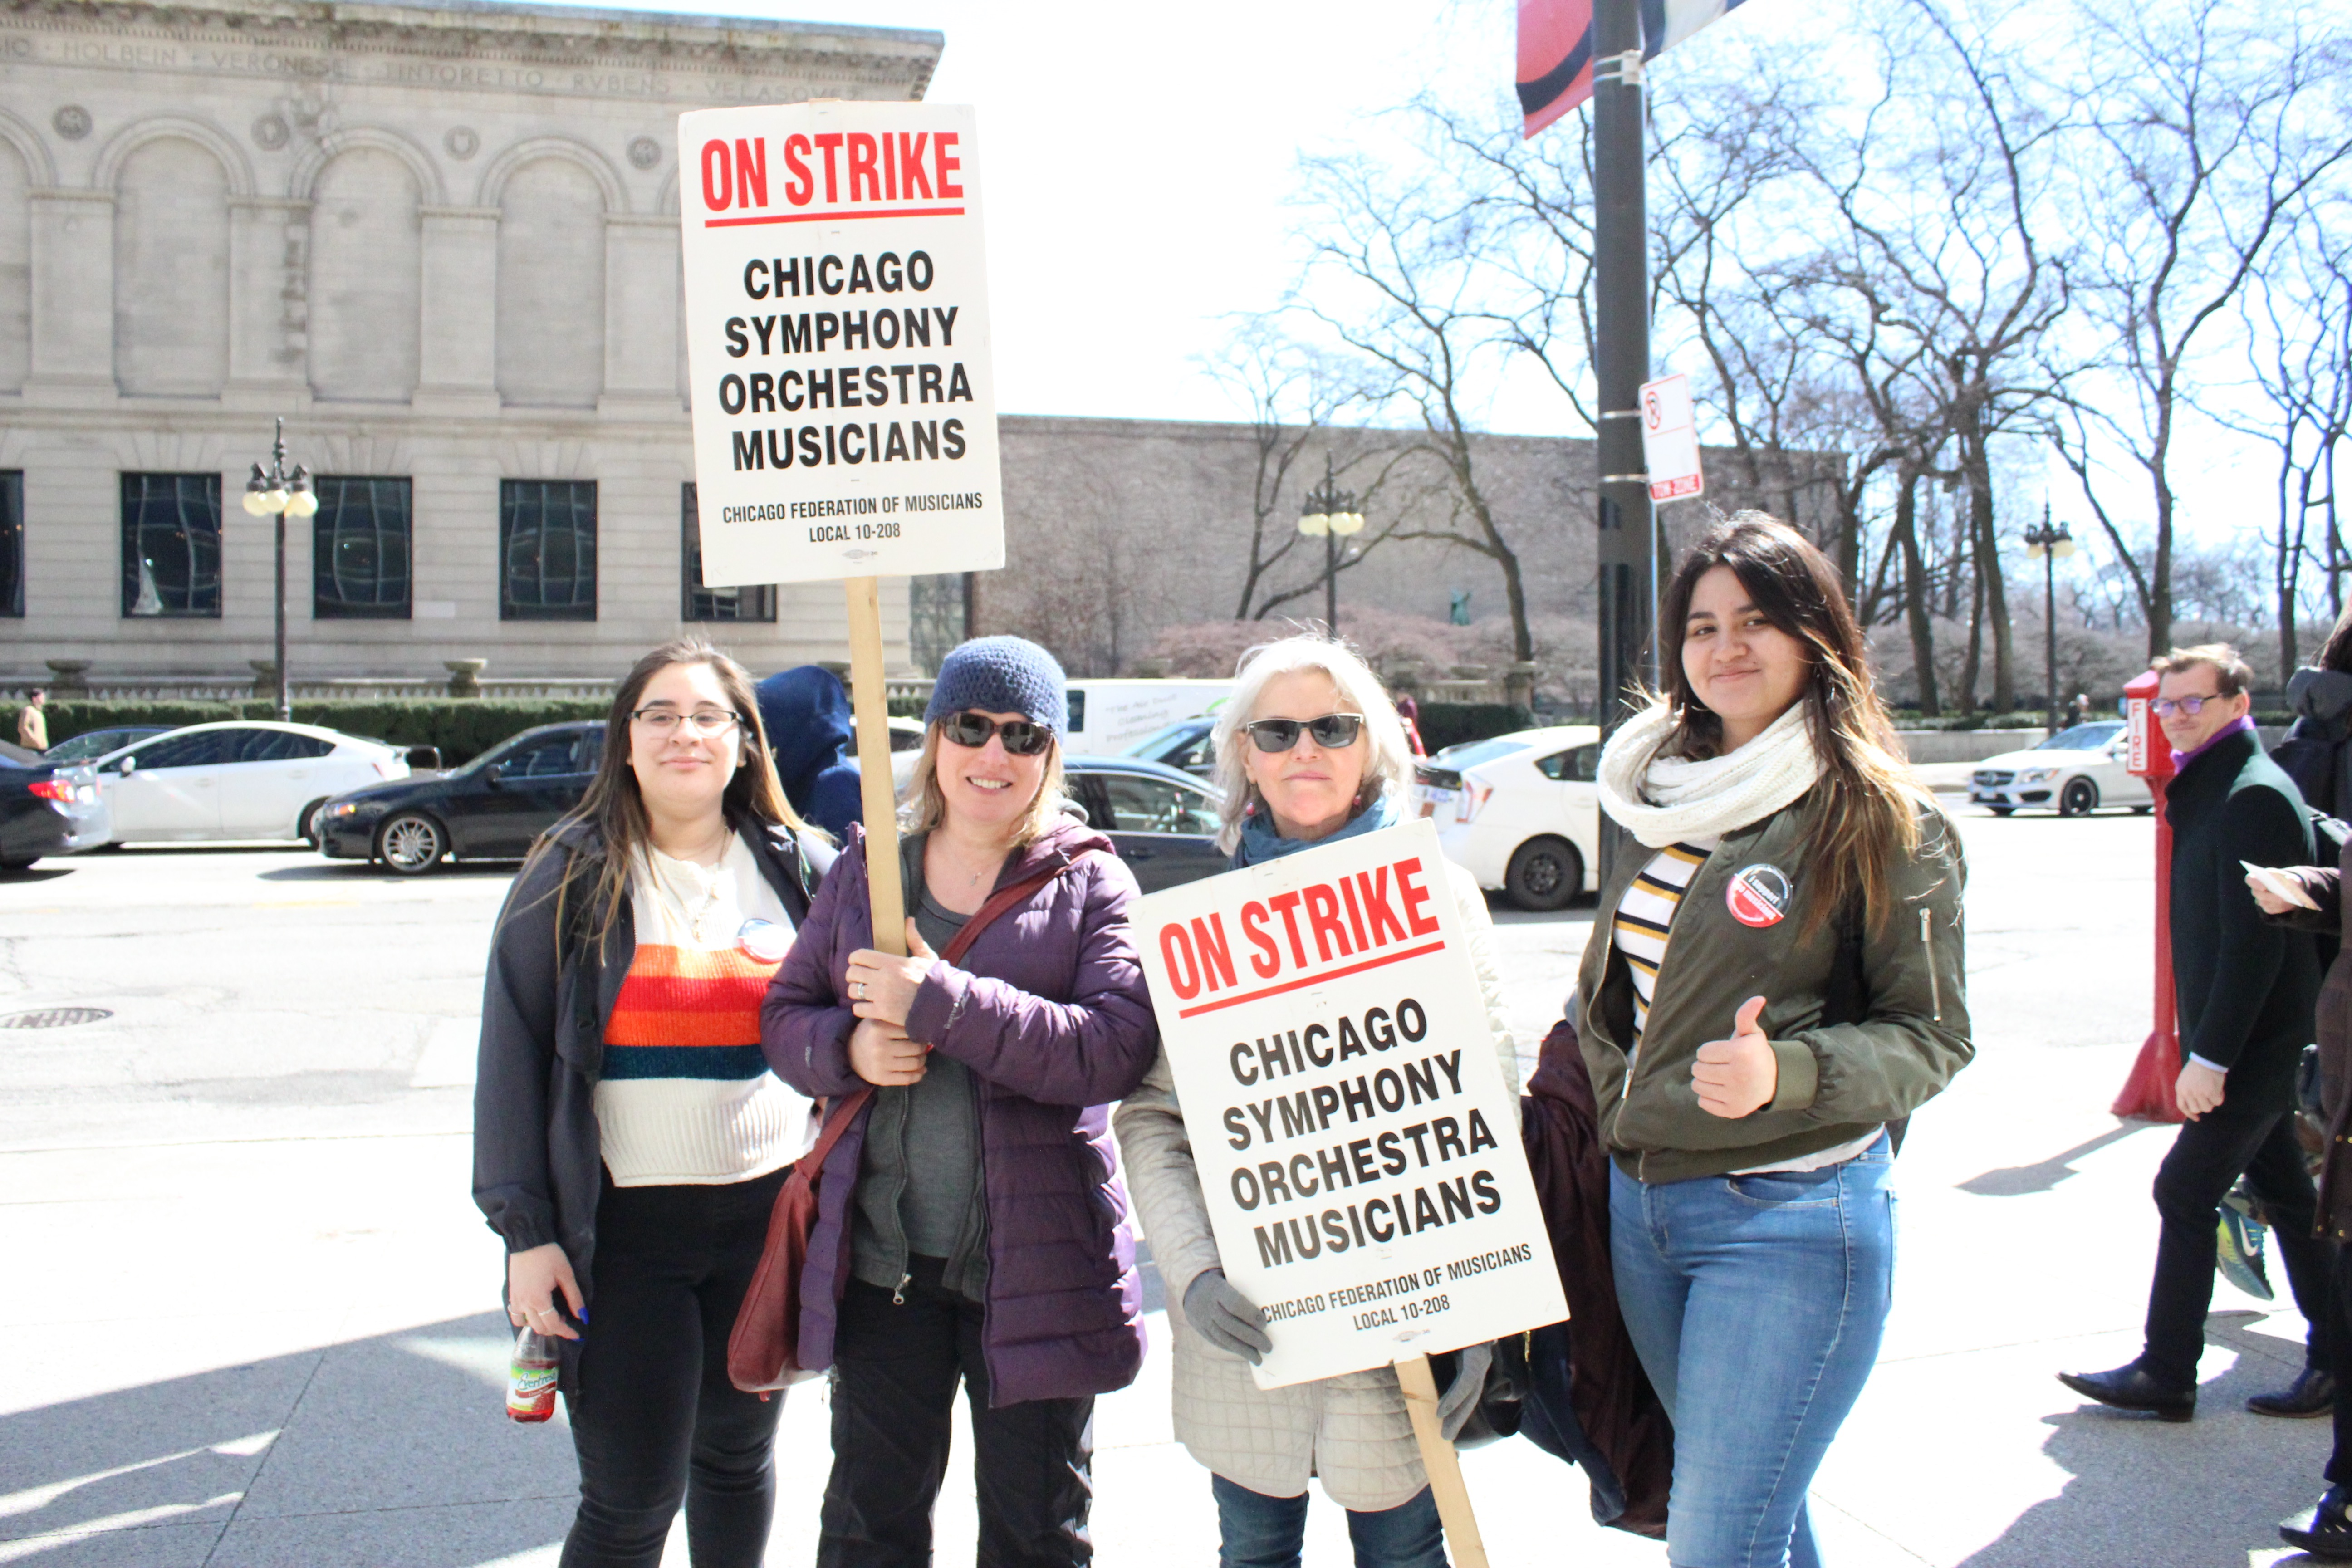 Steinmetz students support the strikers at the Chicago Symphony Orchestra on Friday, March 22. Steinmetz Star photo by America Flores.